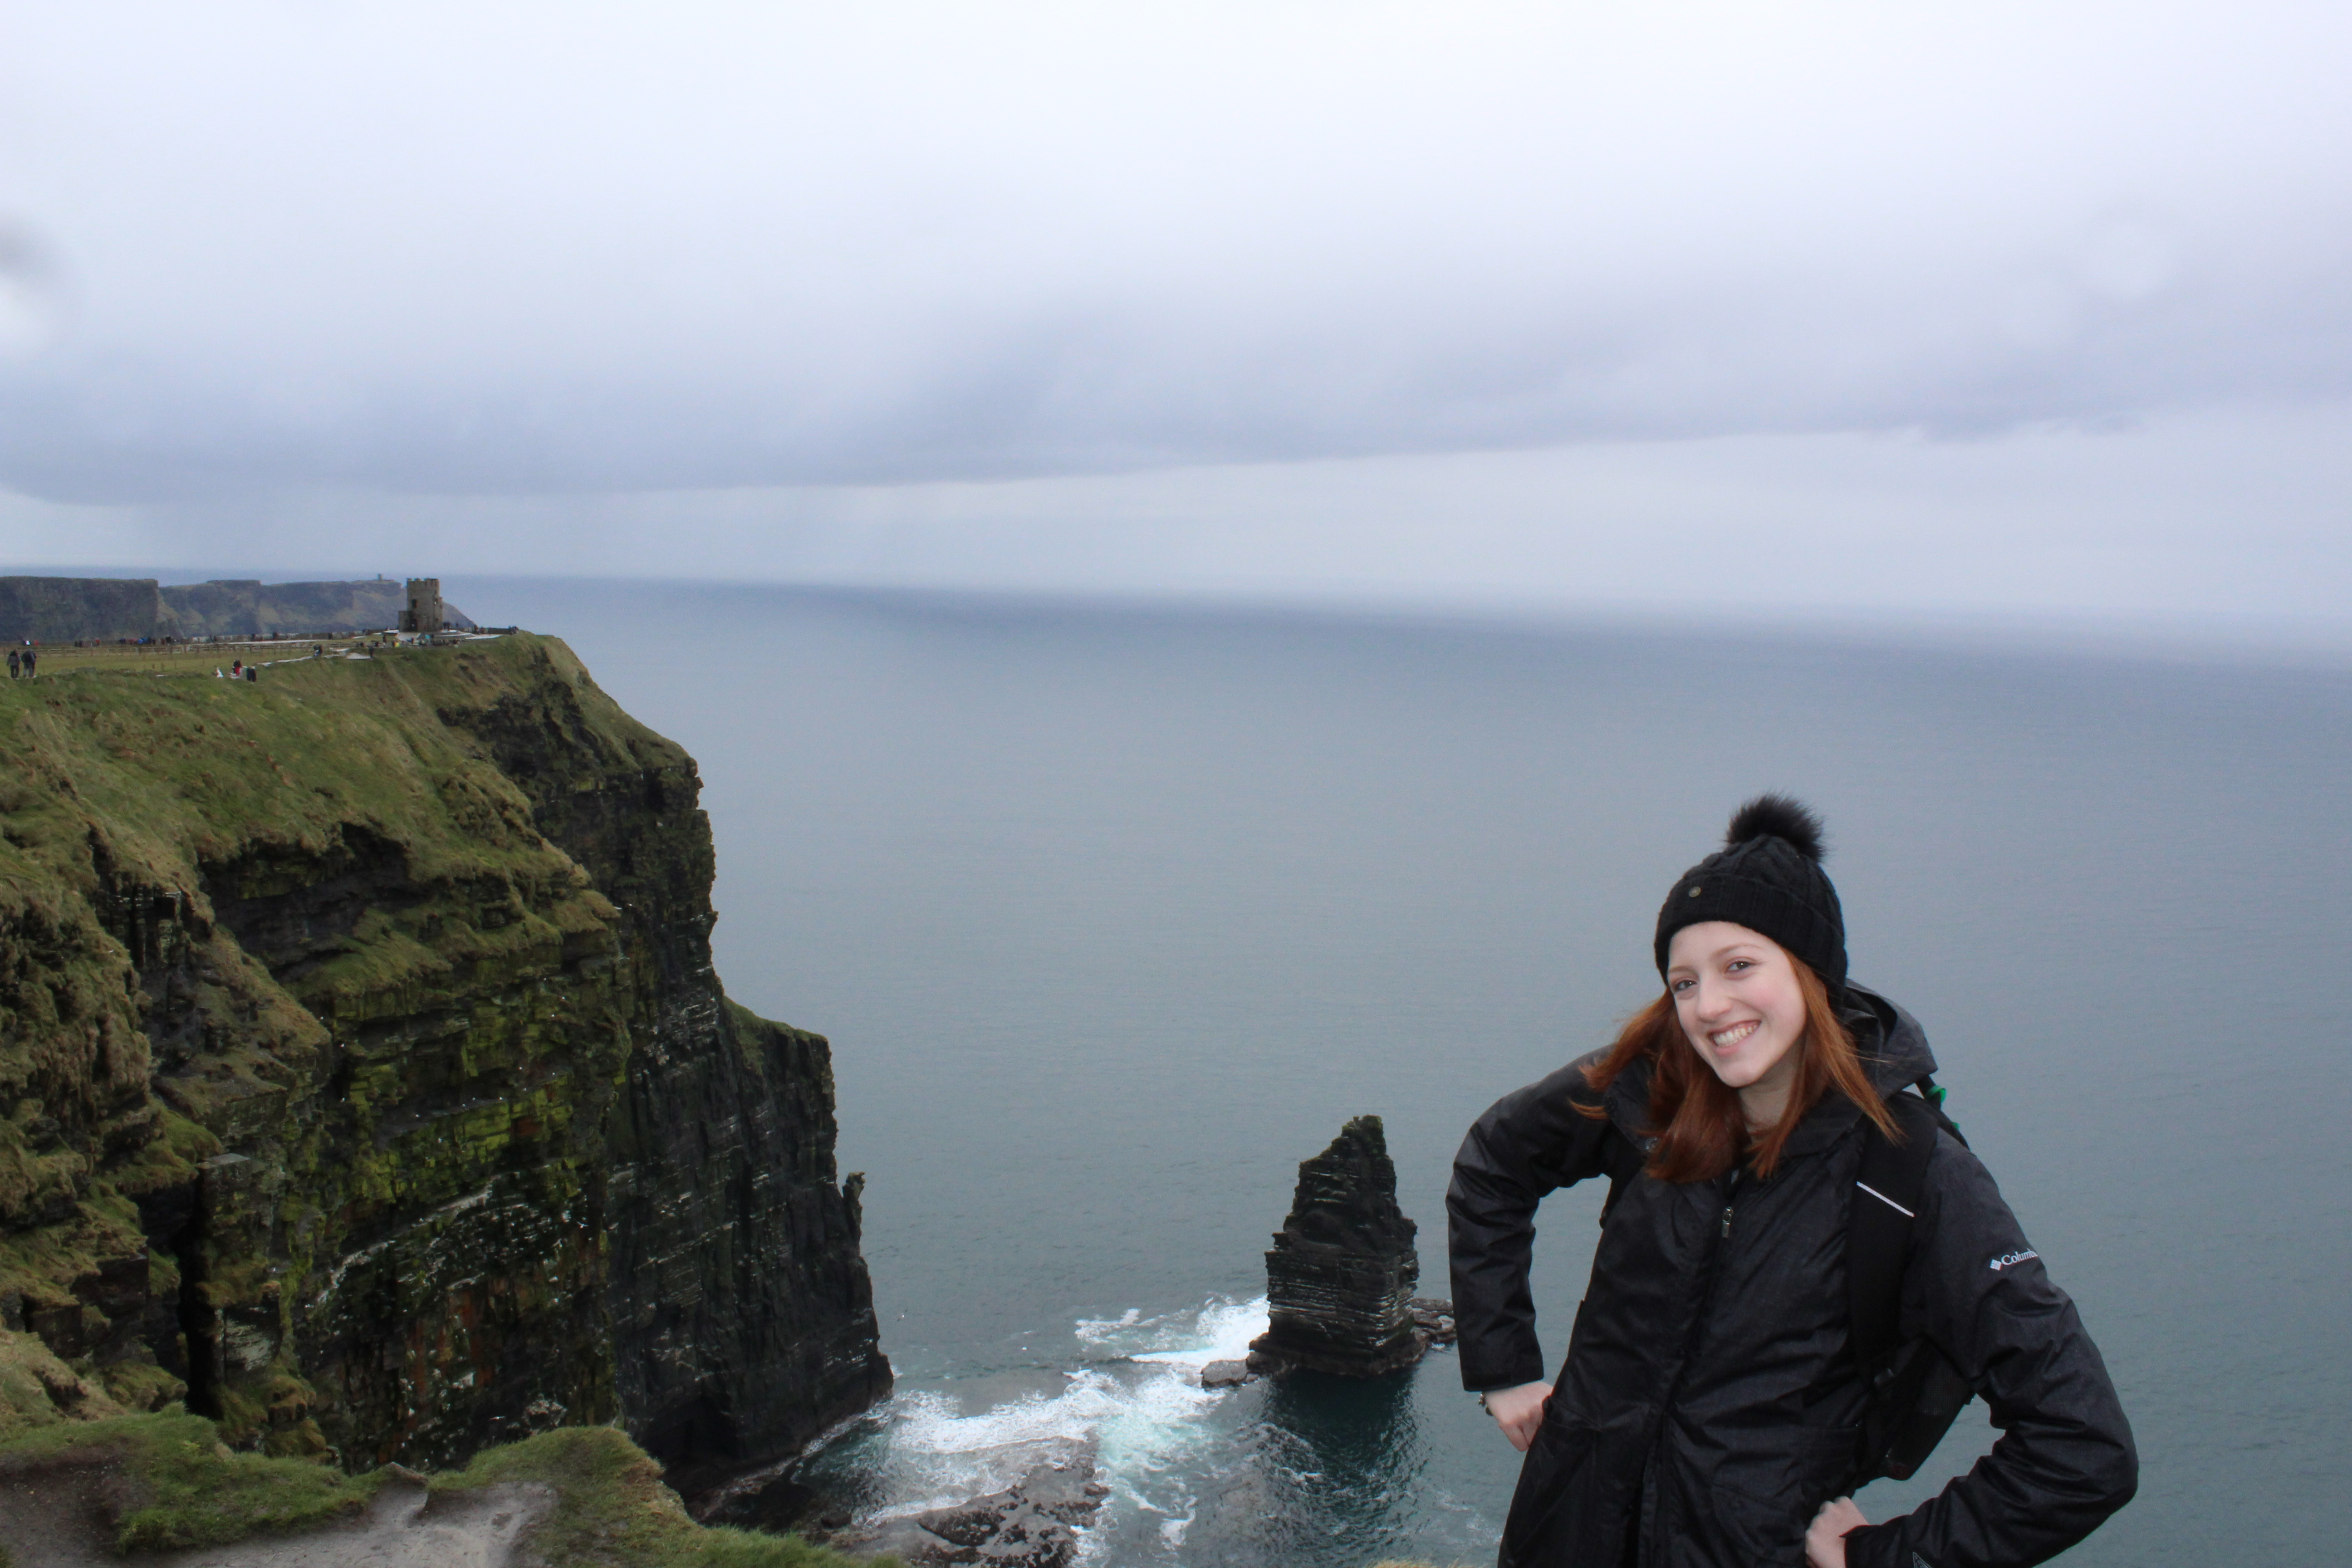 This is me standing on some pretty cool cliffs in Ireland because I figured a picture of a rotten wall wouldn't go over well